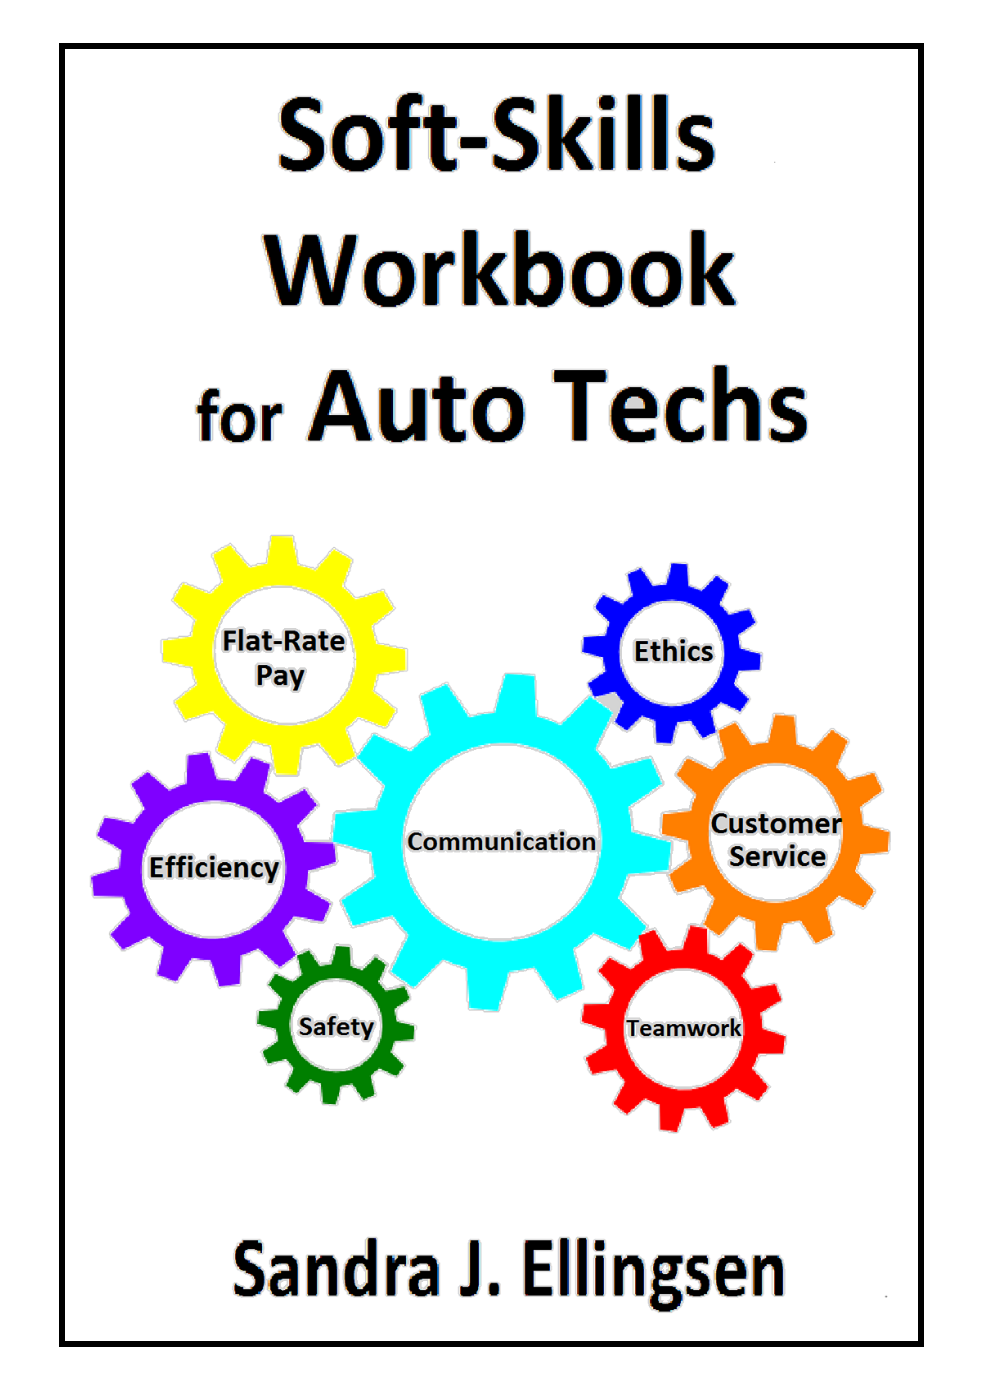 Soft-Skills Workbook for Auto Techs, by Sandra J. Ellingsen